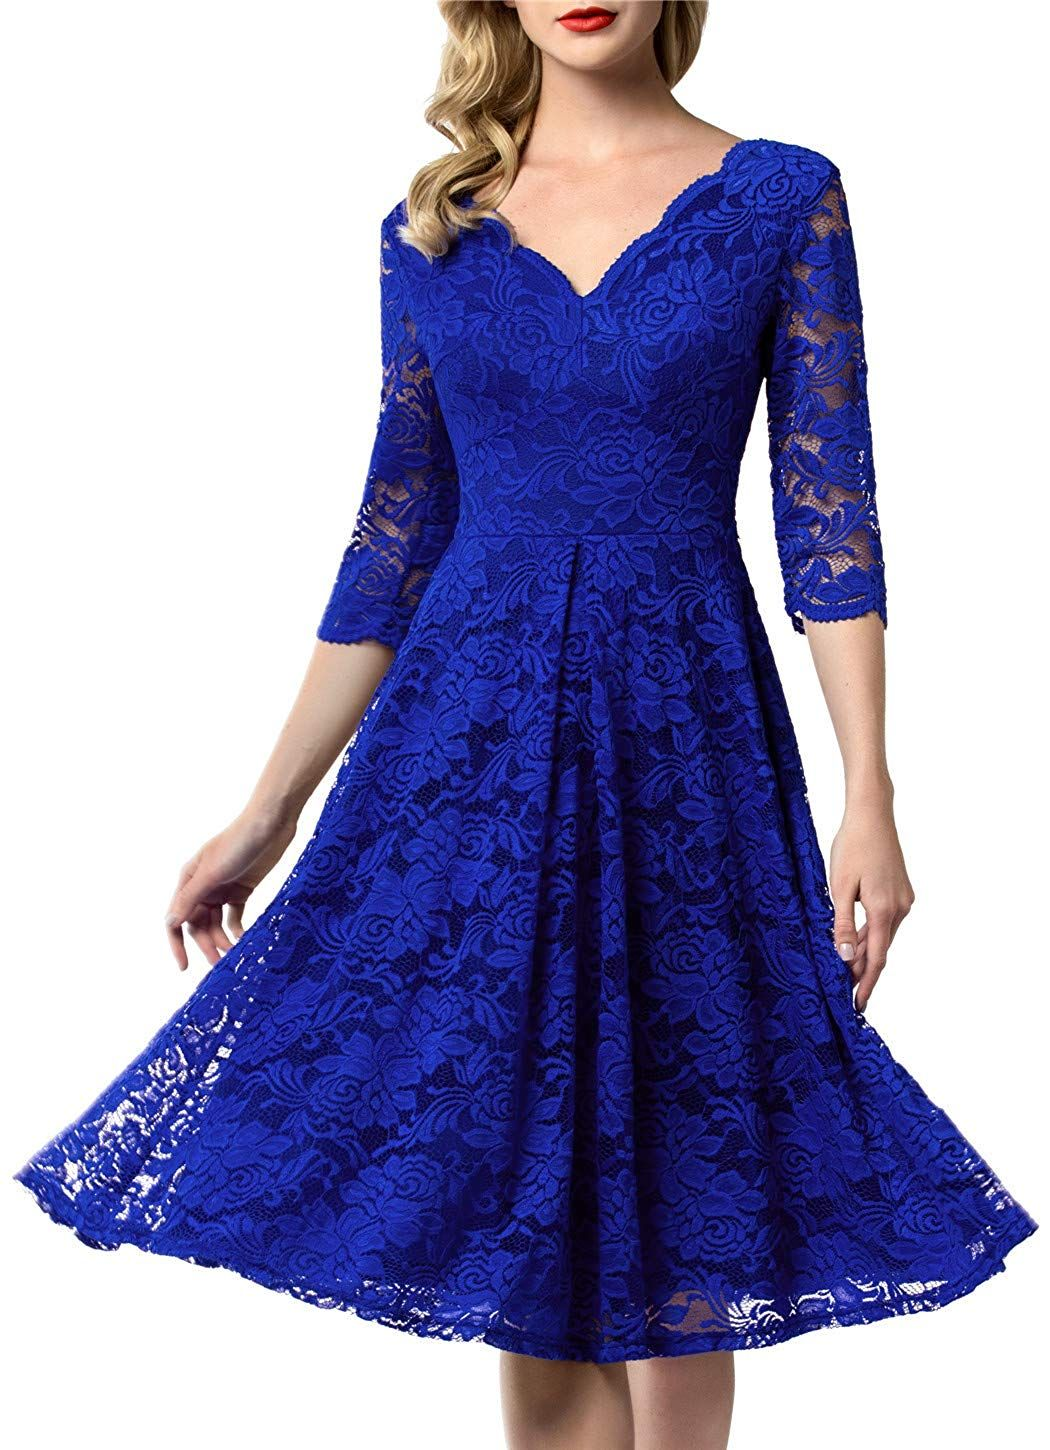 AONOUR Women's Vintage Floral Lace Bridesmaid Dress 34